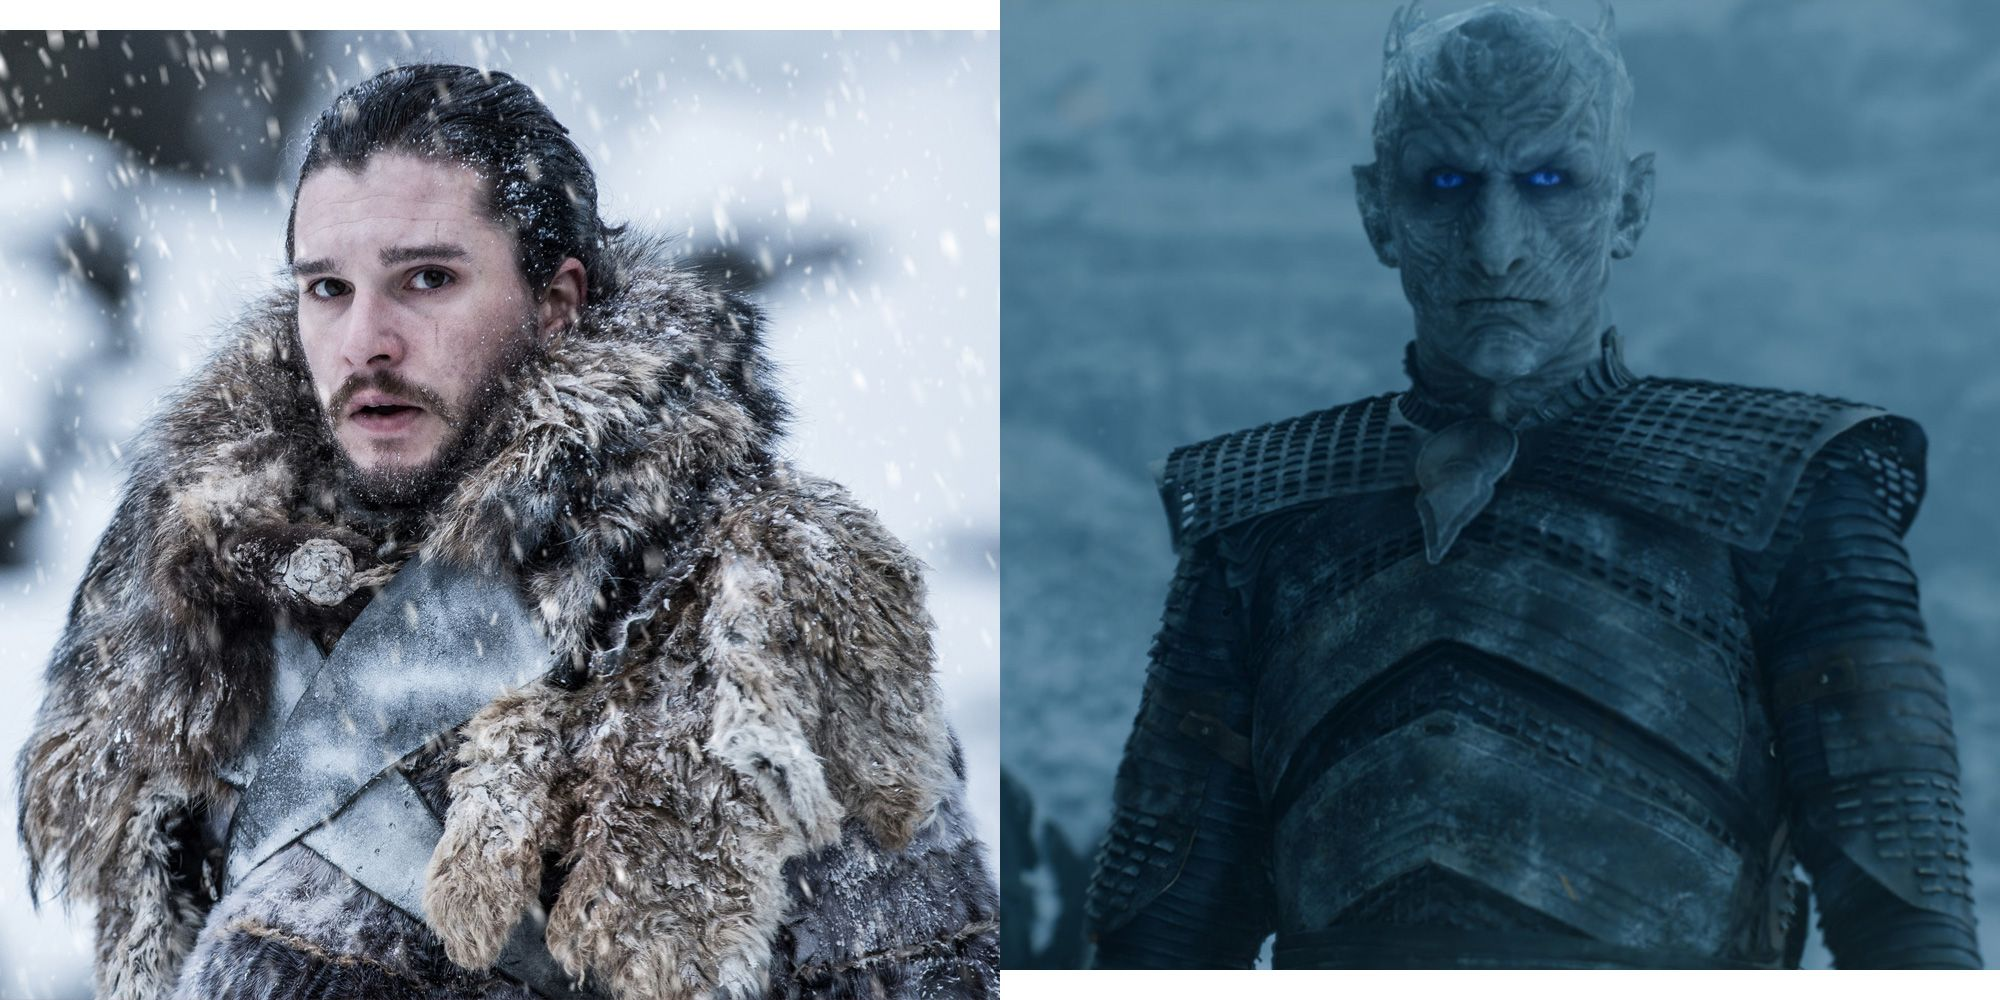 Game of Thrones Season 8 White Walkers Theory - This